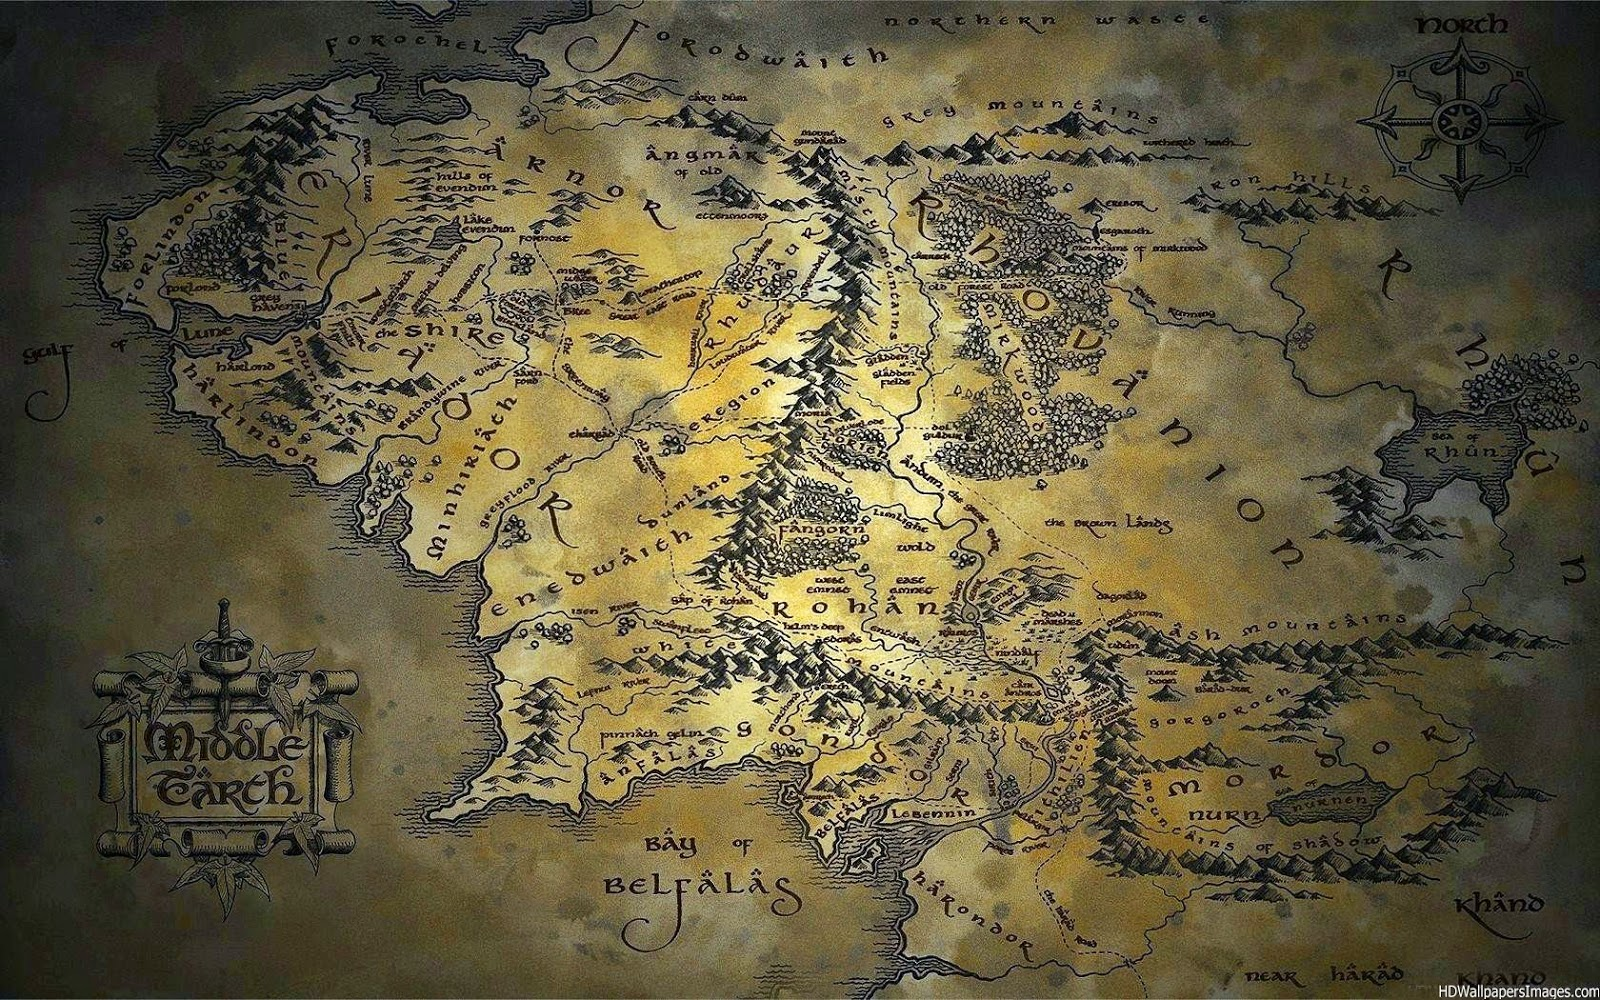 """jrr tolkien essay on beowulf Free jrr tolkien papers, essays, and research papers  the first theory regarding the structure of beowulf is put forth by jrr tolkien in """"beowulf: the ."""